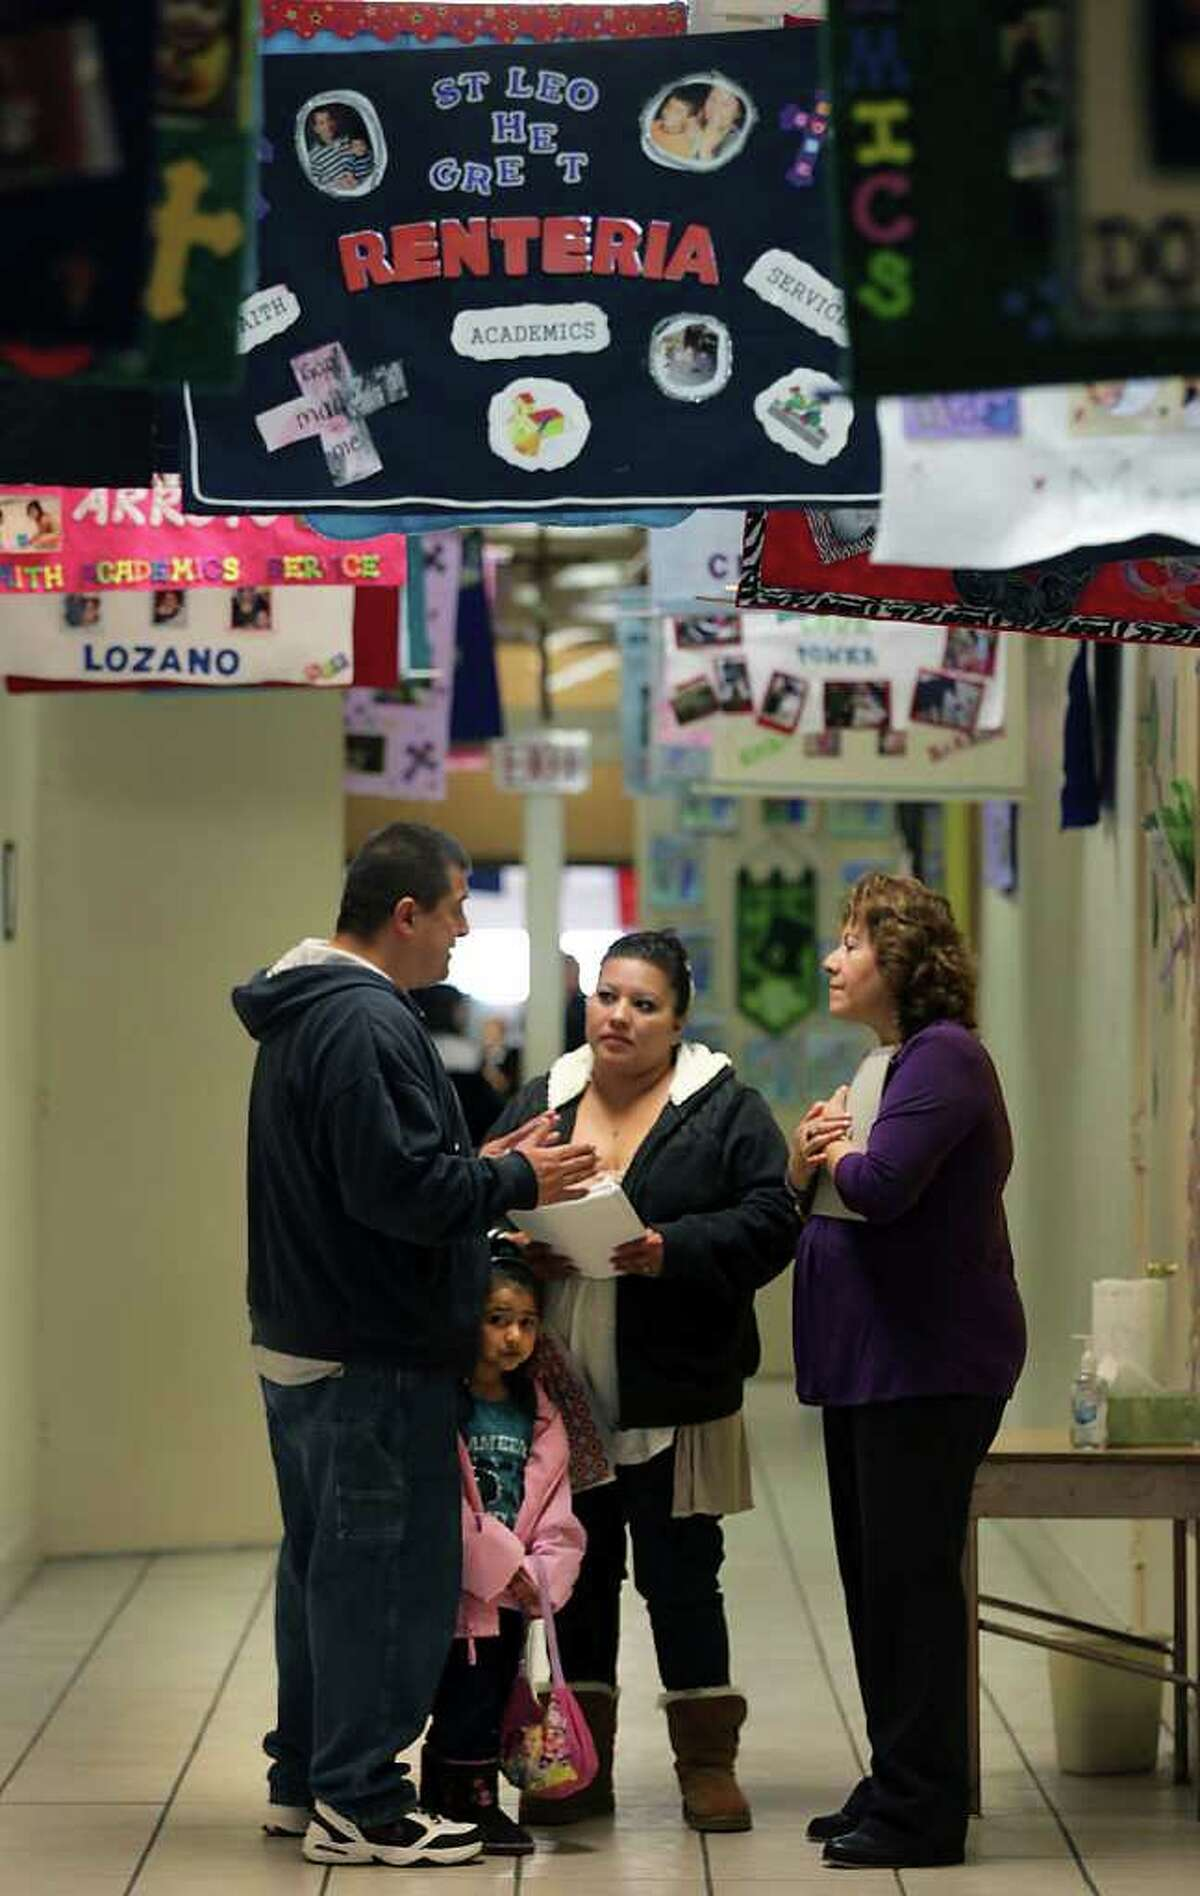 Alma Rodriguez, right, Office Manager at St. Leo the Great Catholic School, listens to questions from Douglas Ramirez, left, as he and his wife Veronica, center, take a tour of the school to enroll their 3 year old daughter Victoria. In the hall hang family banners rerpresenting the families that attend the school. Students and faculty at St. Leo the Great Catholic School will see an increase in the student body as The Archdiocese of San Antonio announced the closing of St. Cecilia and St. Philip of Jesus schools.